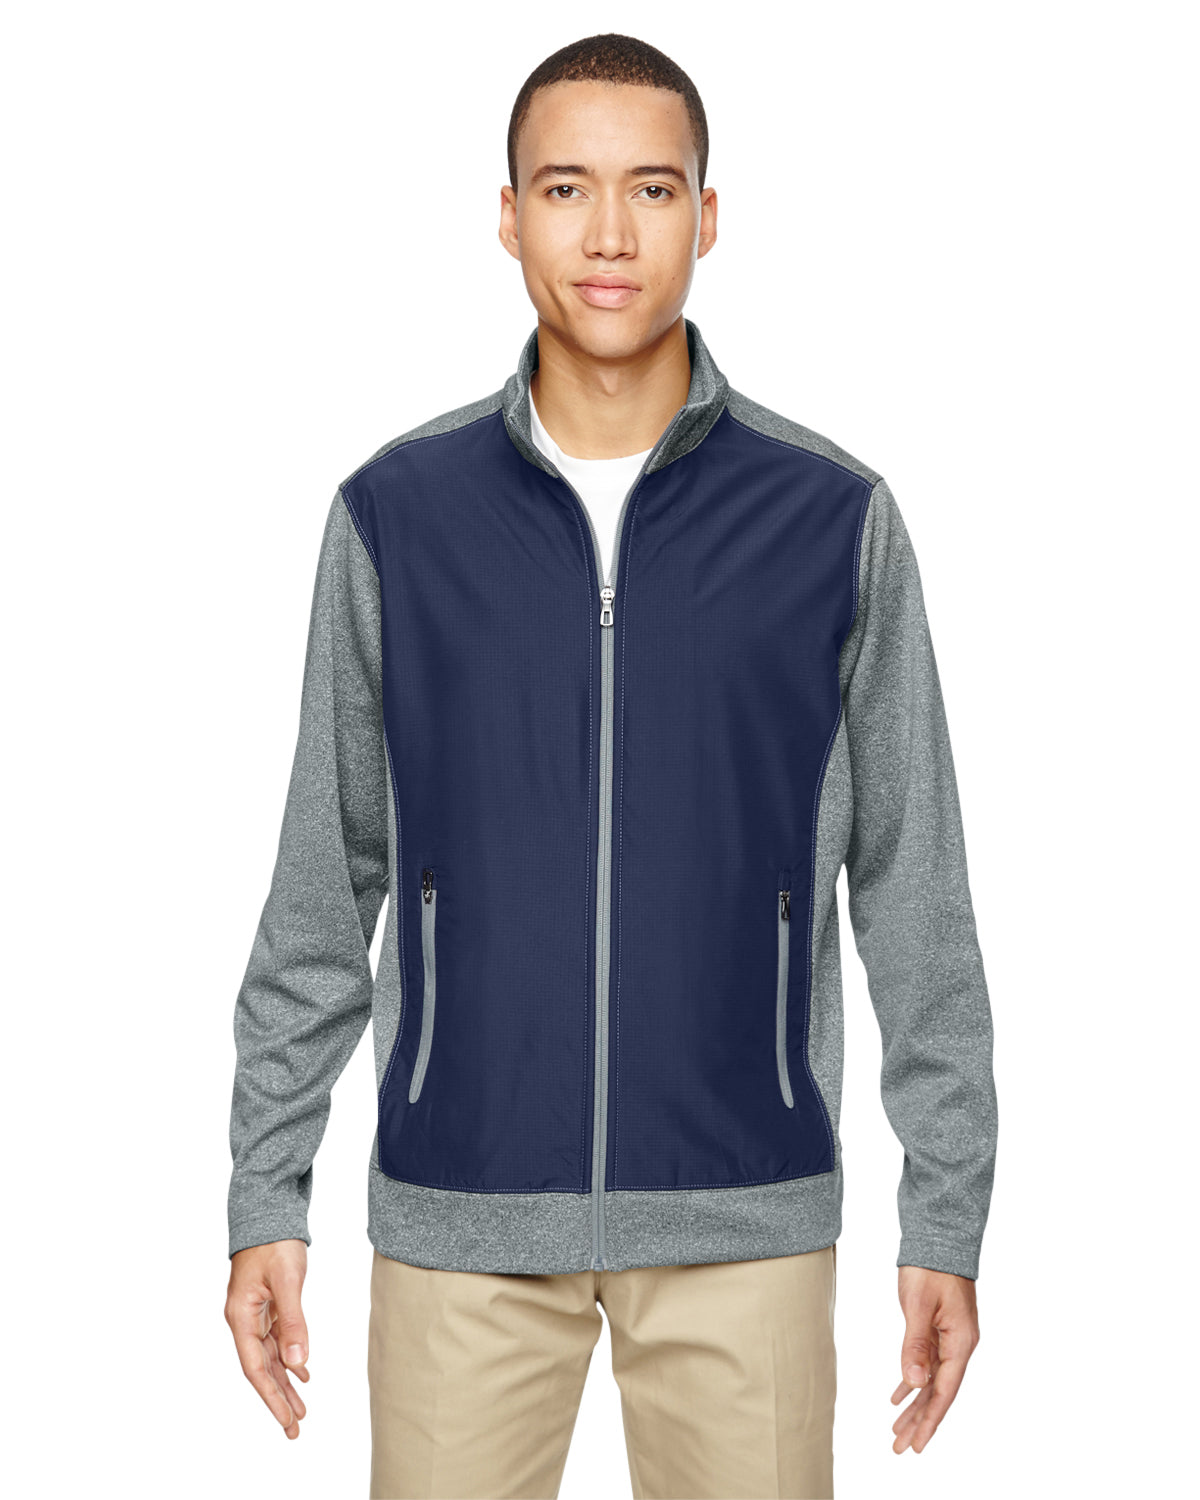 NORTH END MEN'S VICTORY HYBRID PERFORMANCE FLEECE JACKET